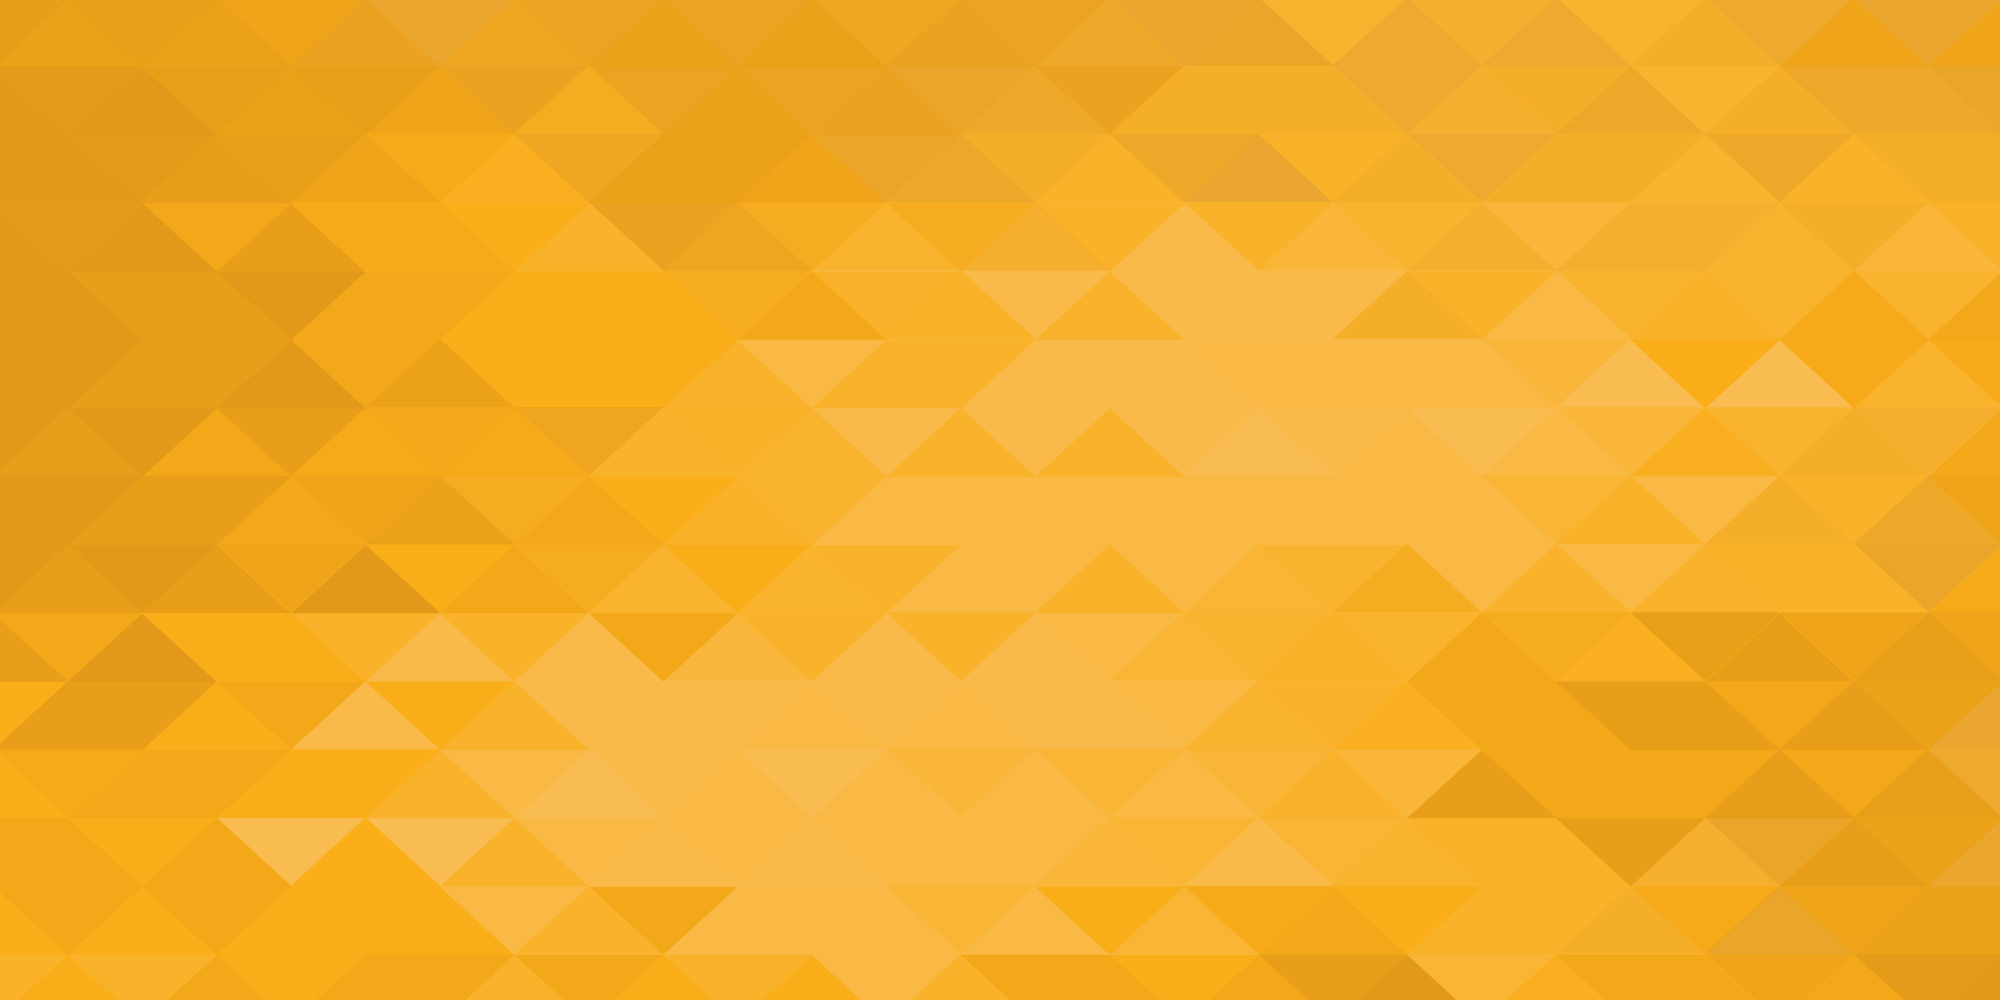 yellow background pattern